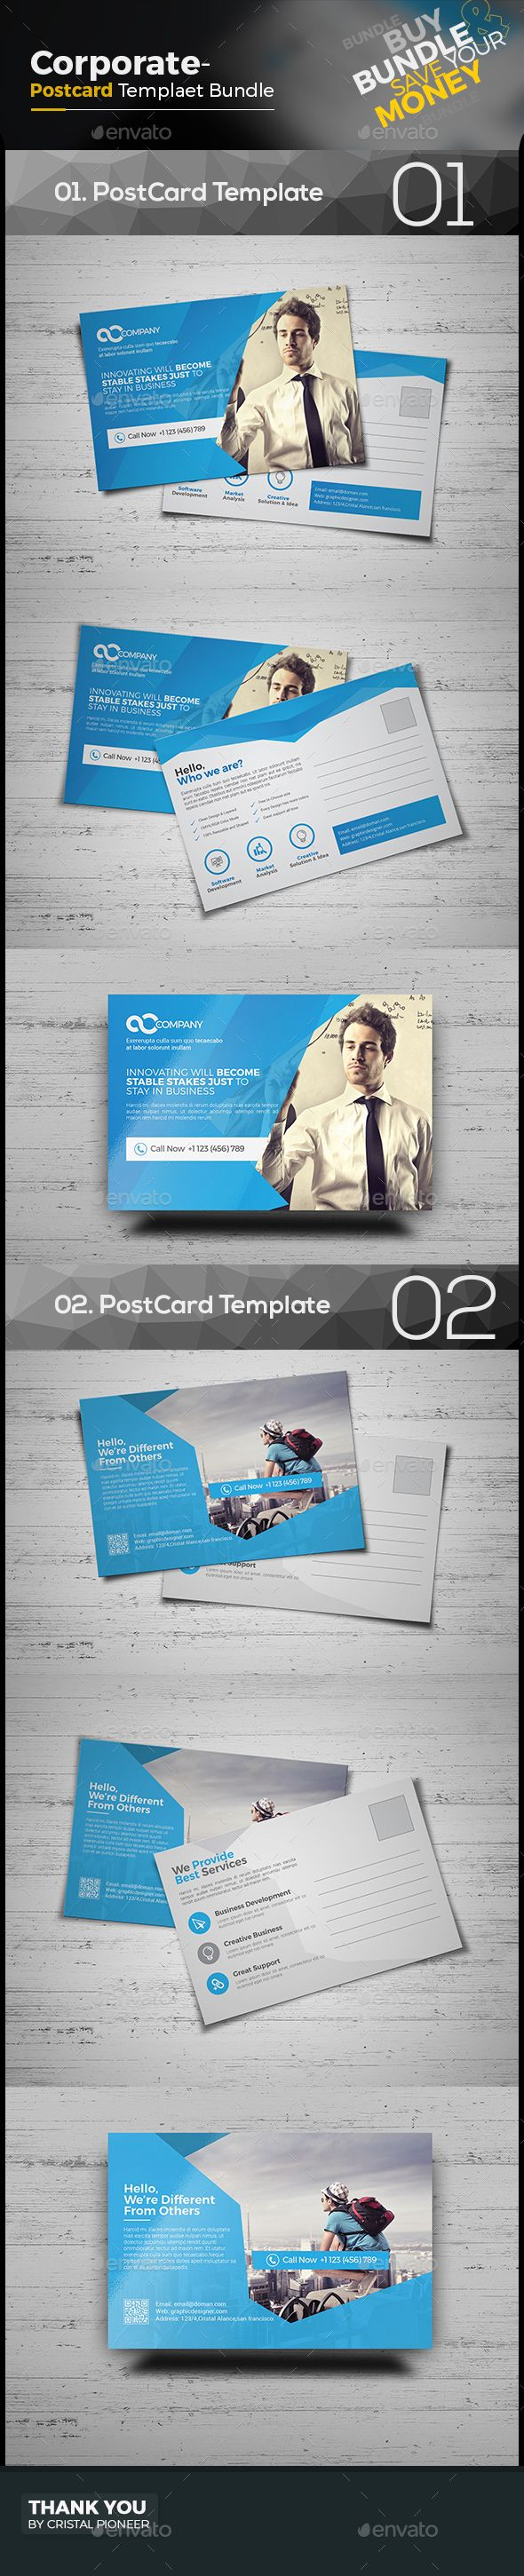 86 best images about Corporate Postcard Template on Pinterest